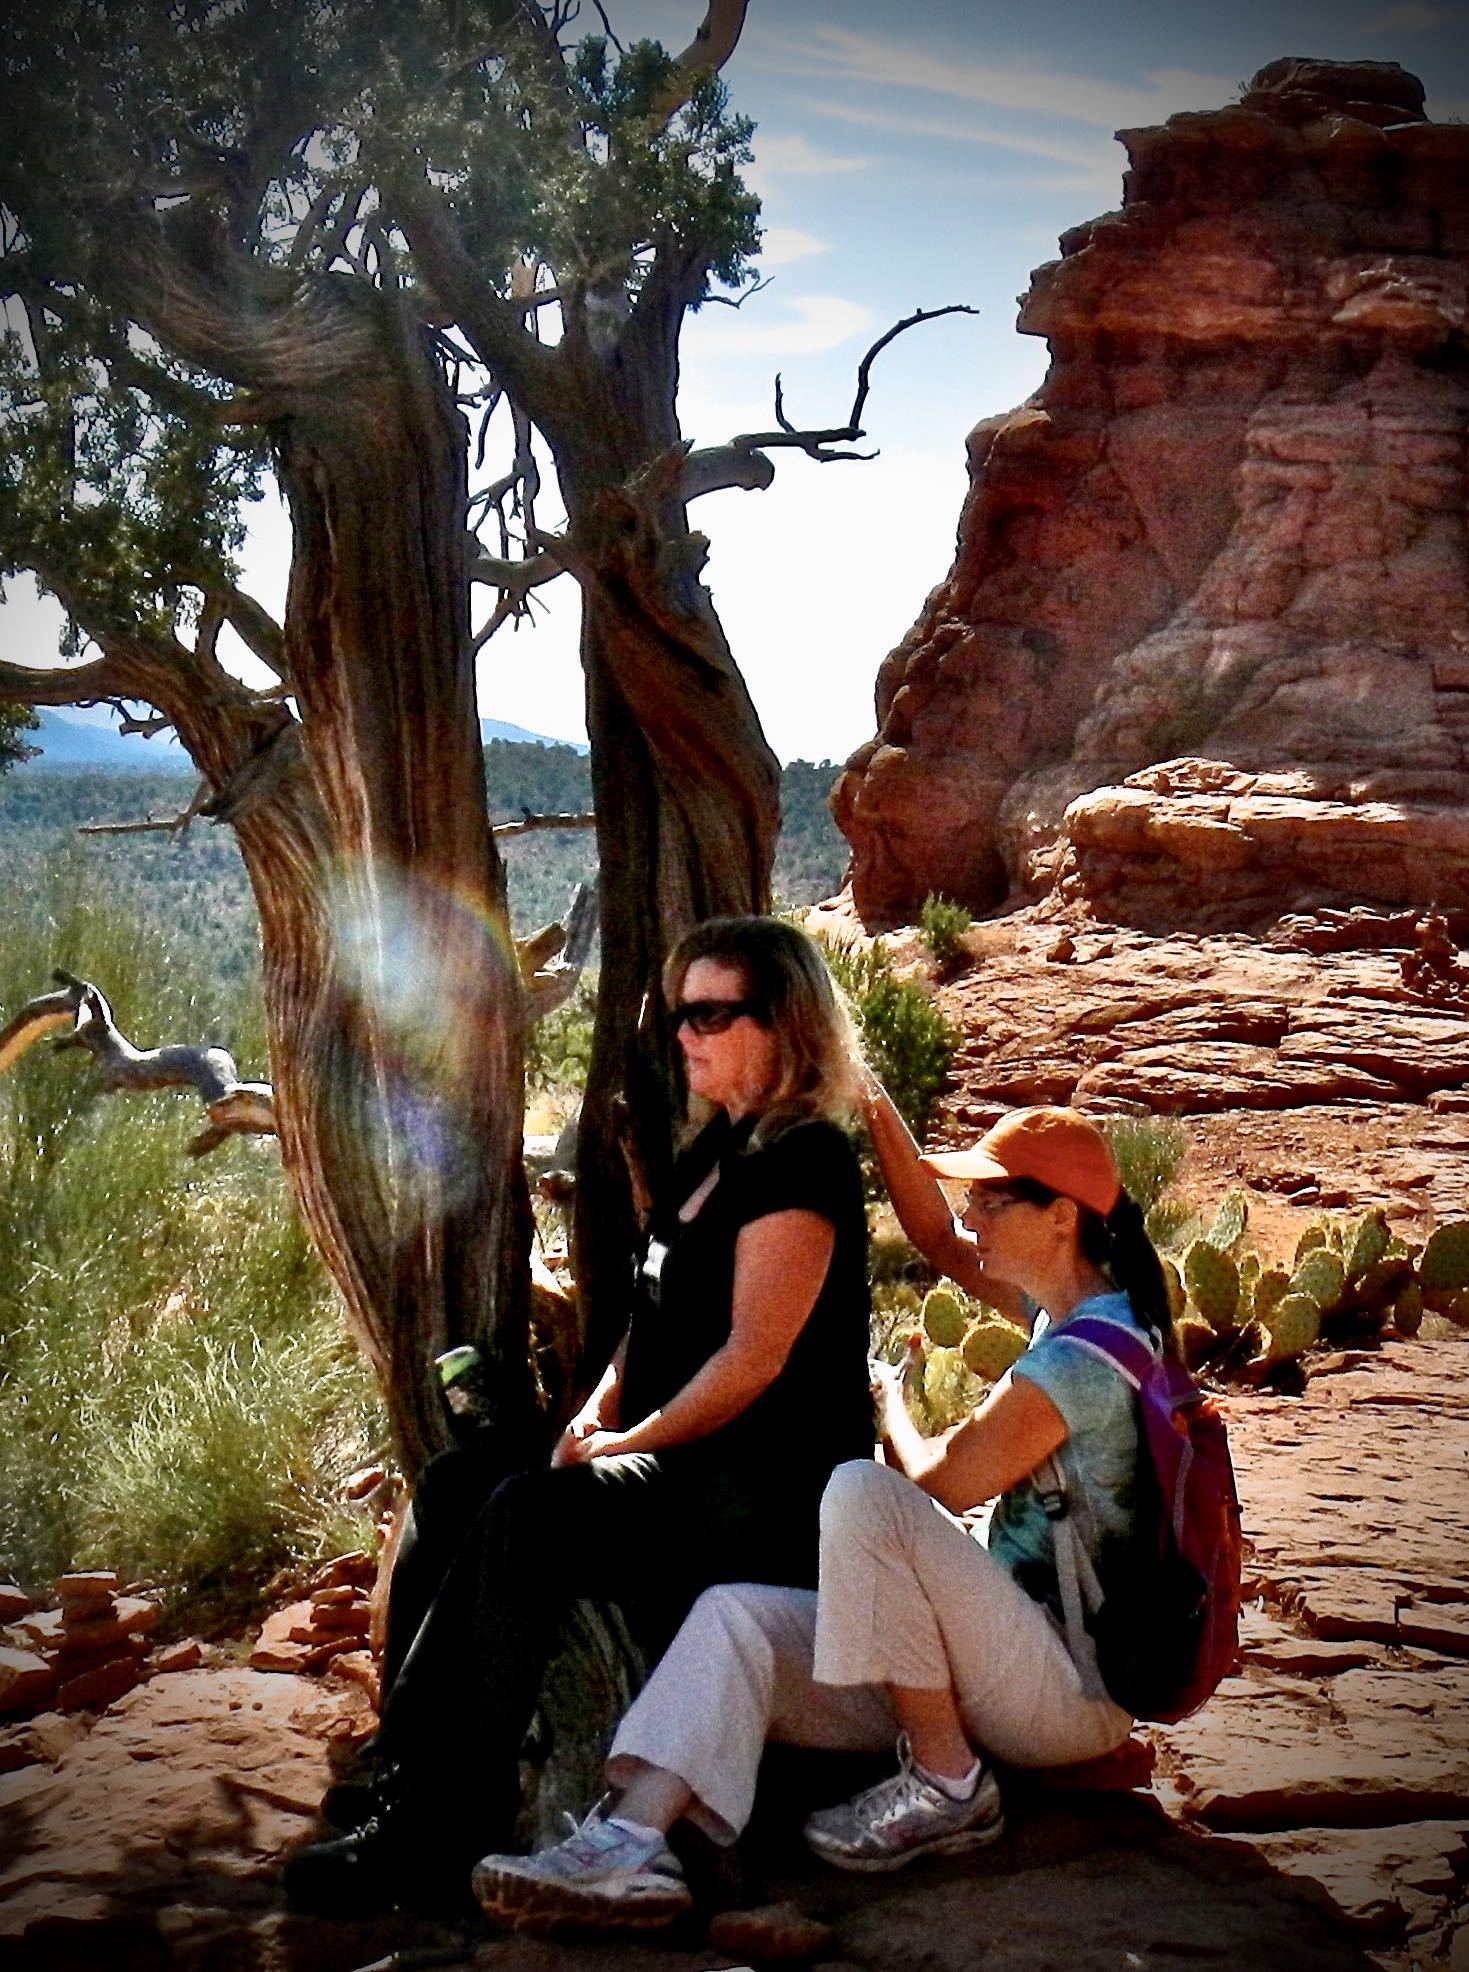 Anita Owen's guide, King Solomon, can be clearly seen in our energy session at a Sedona, AZ vortex point.